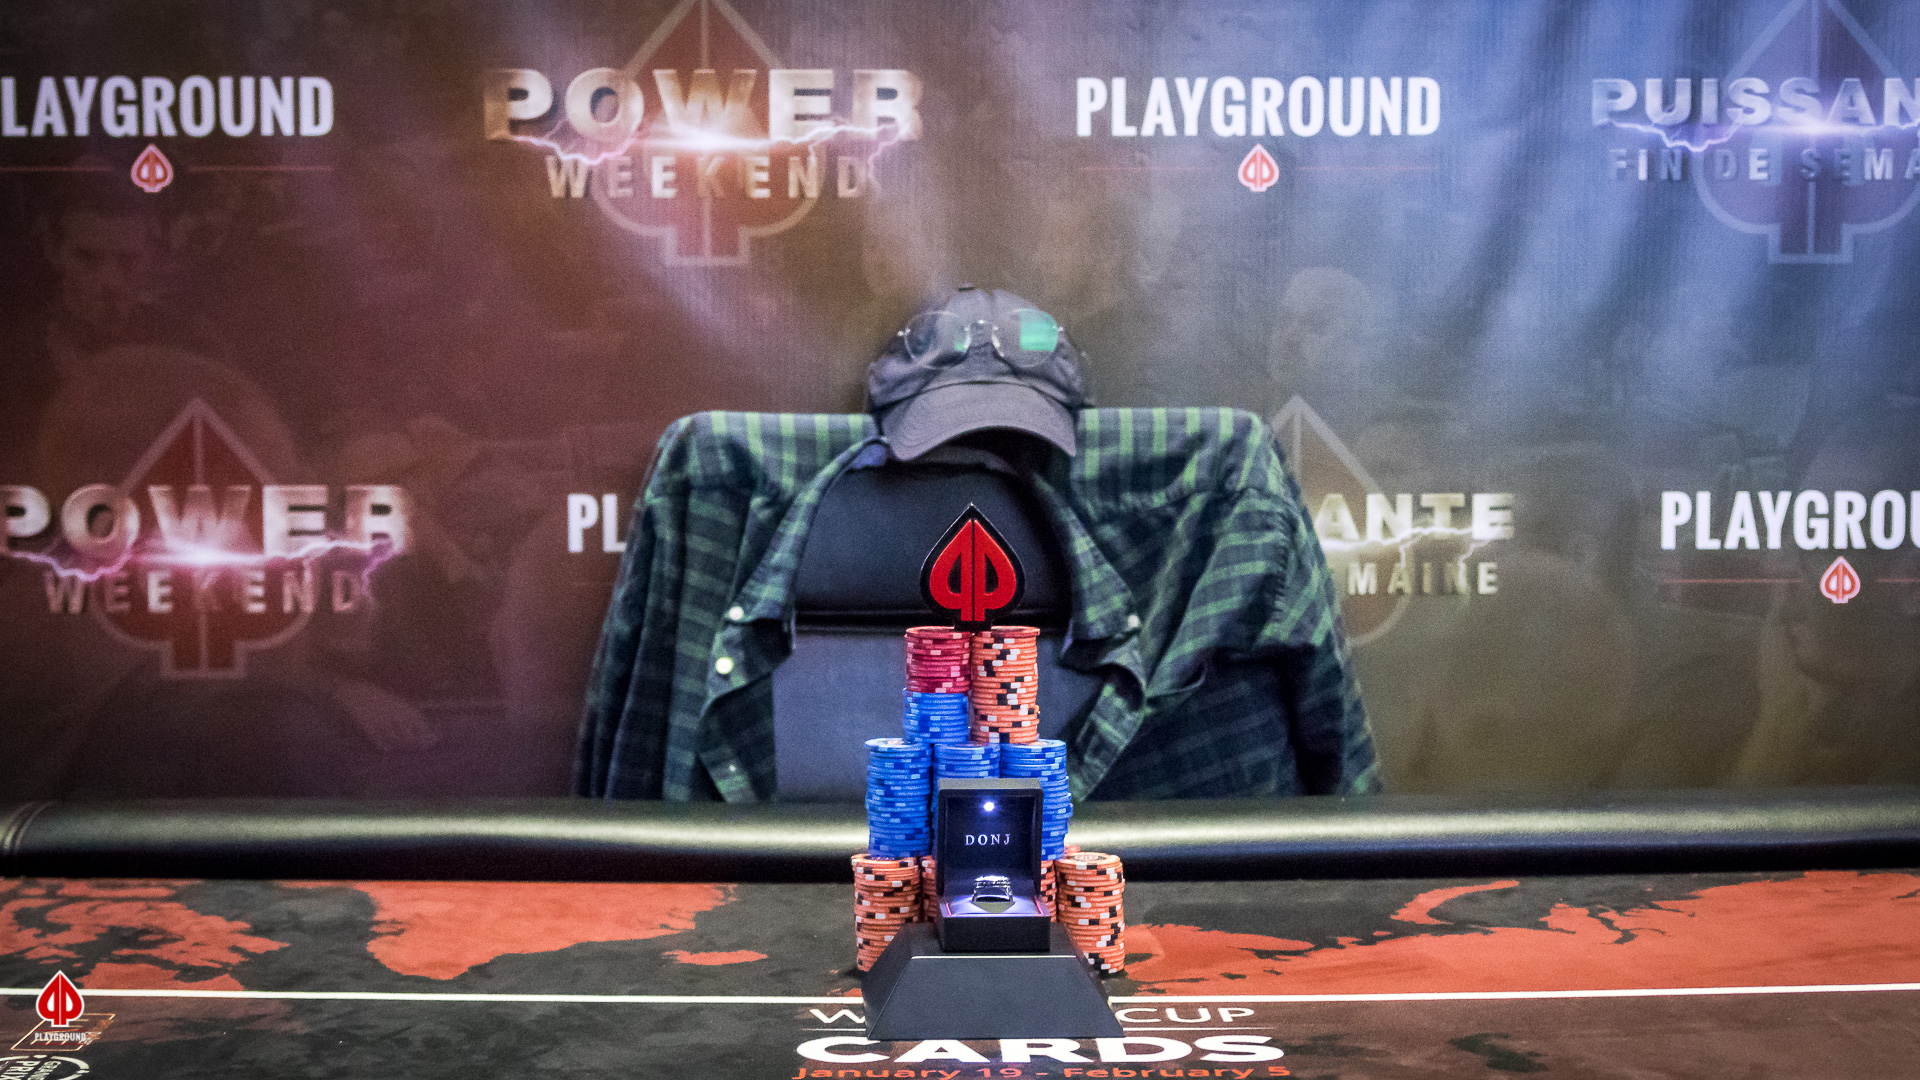 Playground 200 Champion: Jean-Pascal Gauthier